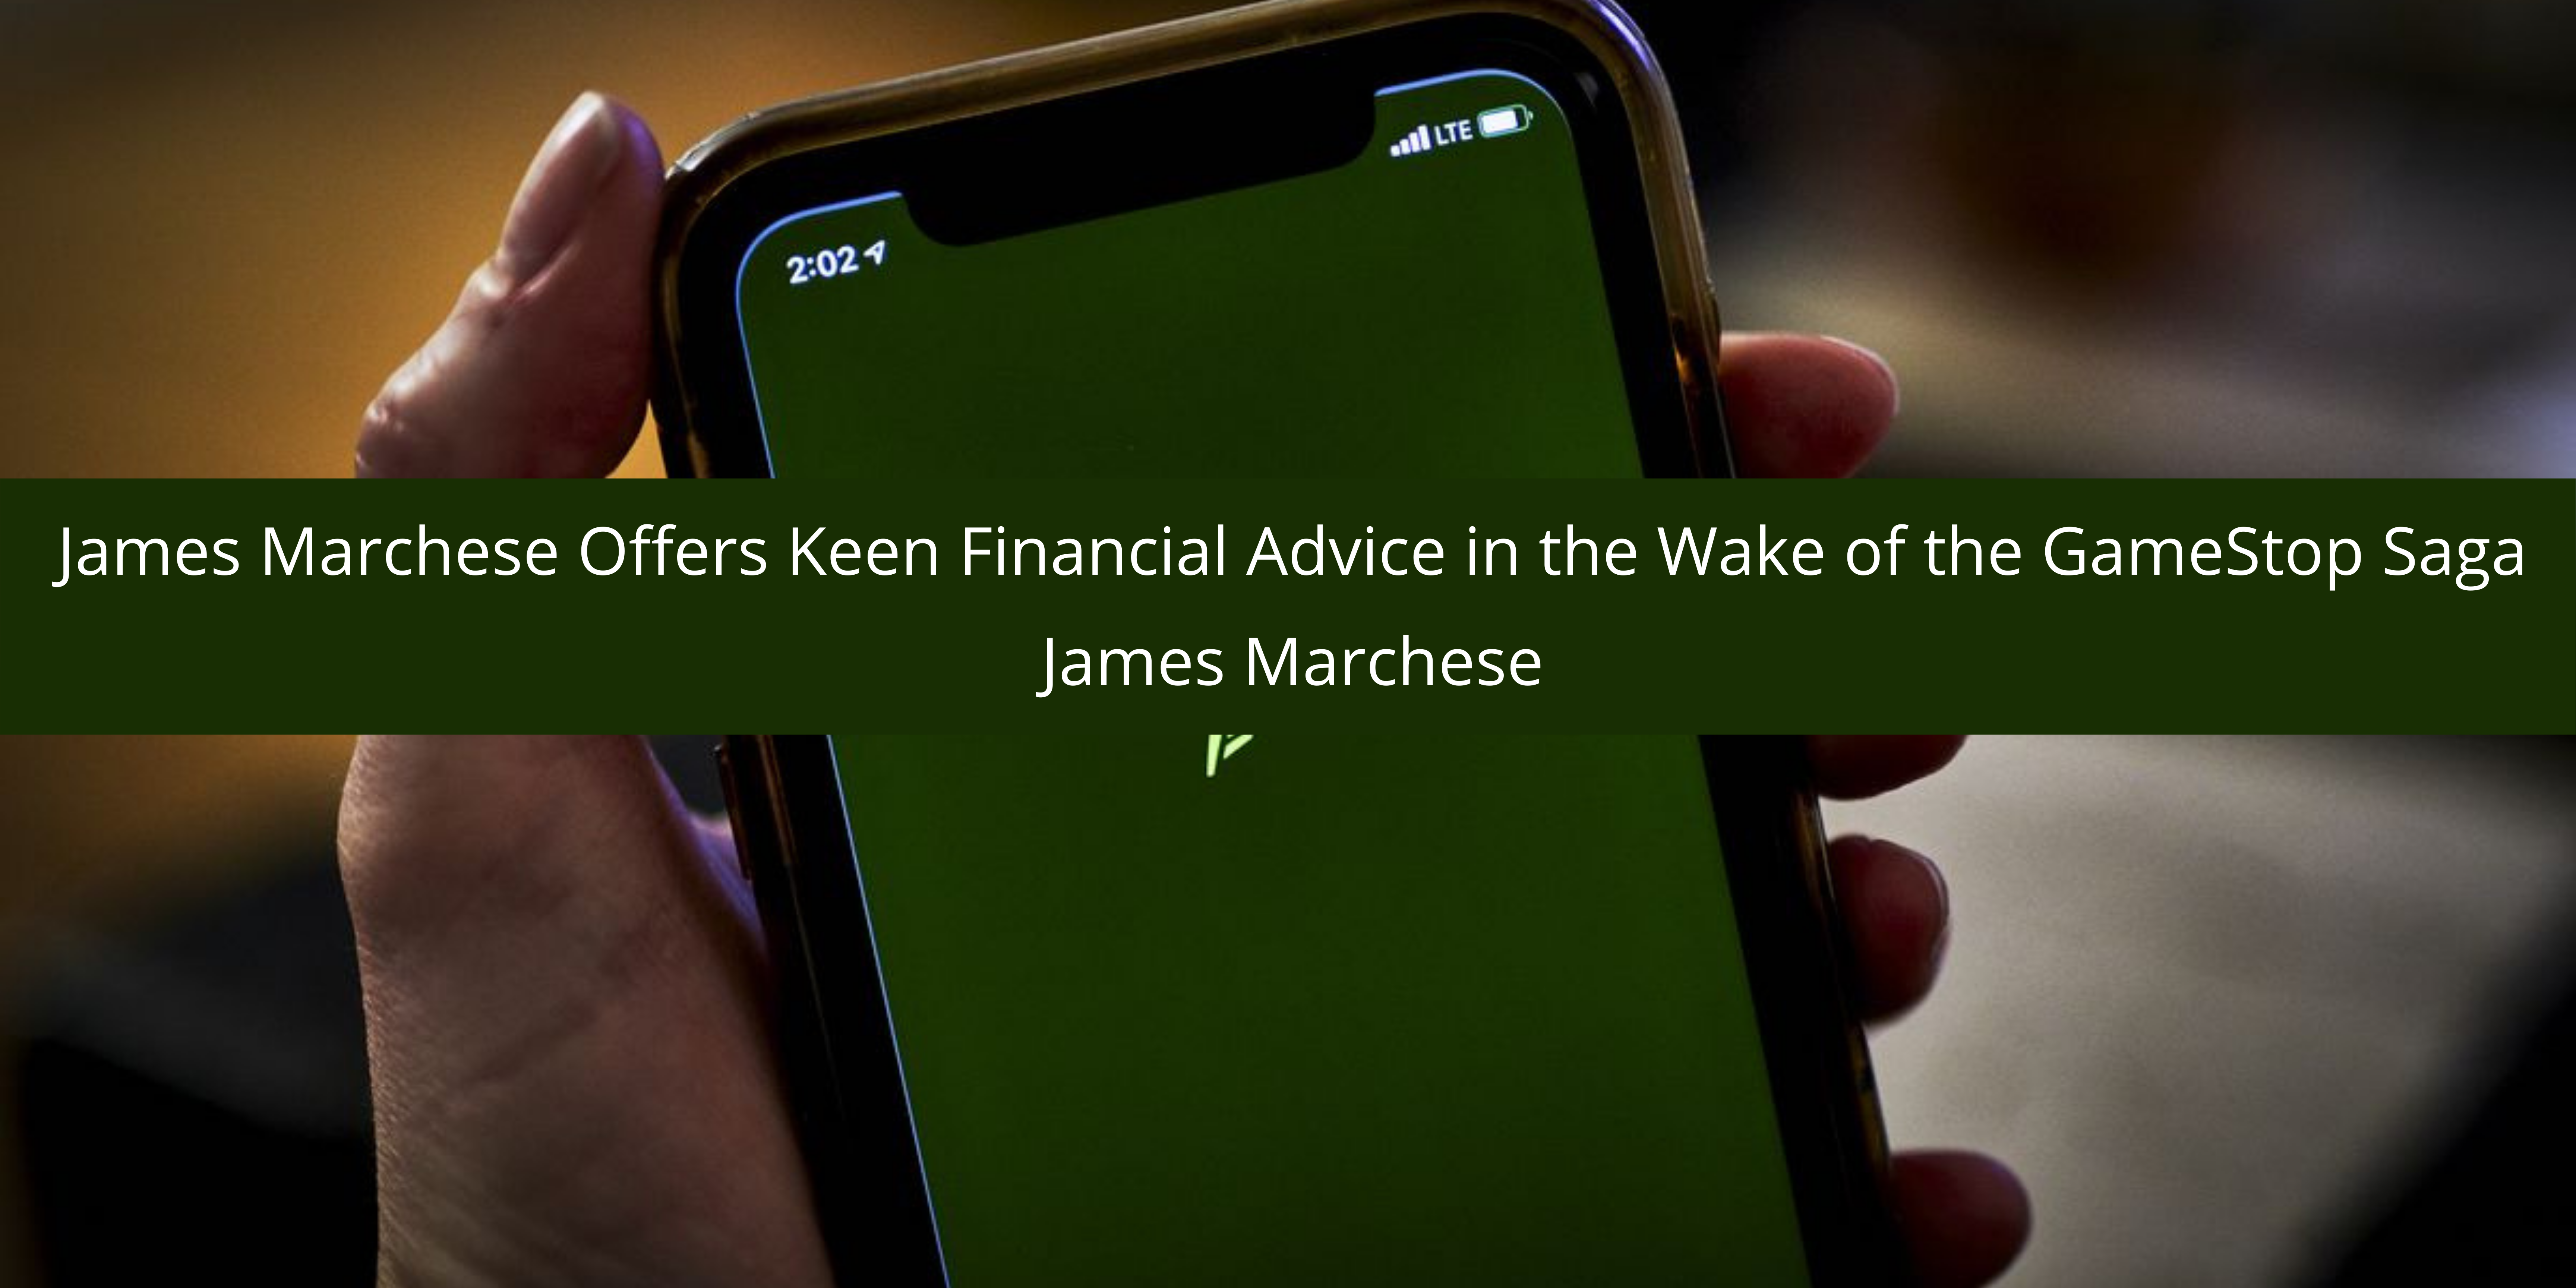 James Marchese Offers Keen Financial Advice in the Wake of the GameStop Saga